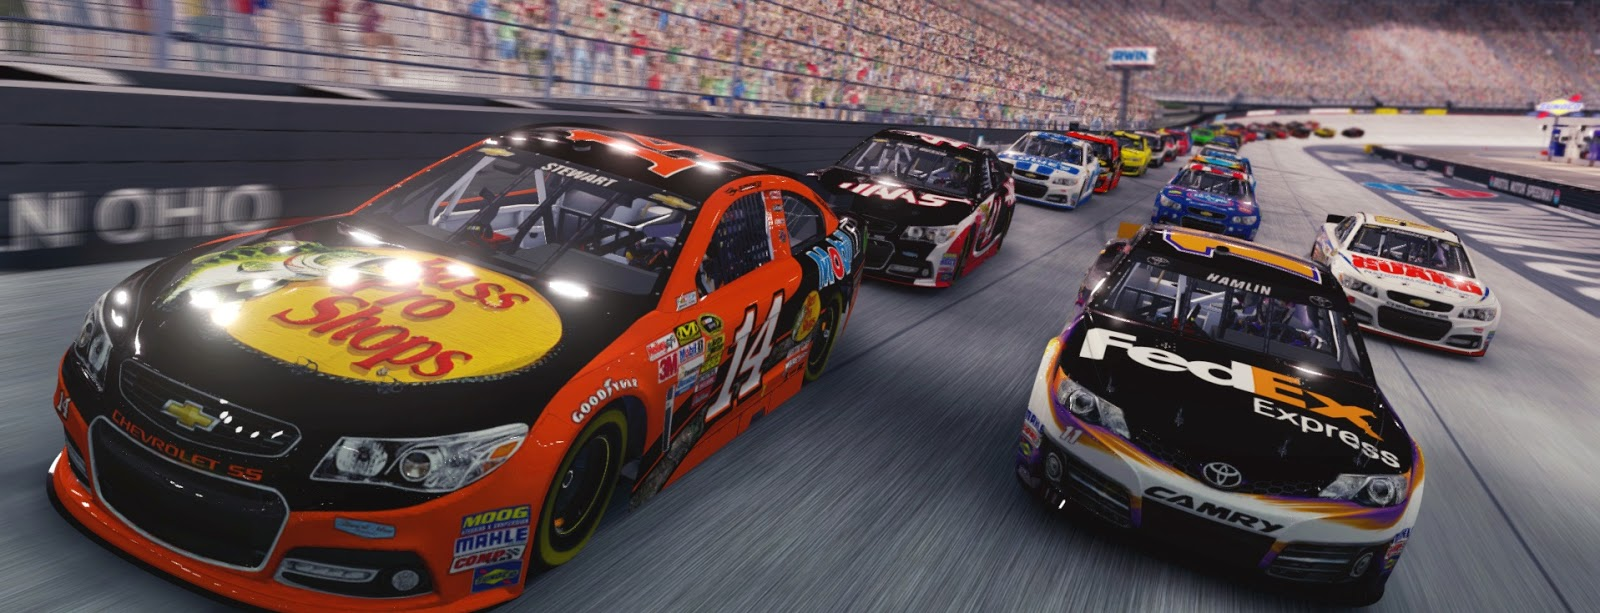 NasCar 14 Pc Game Full Version Free